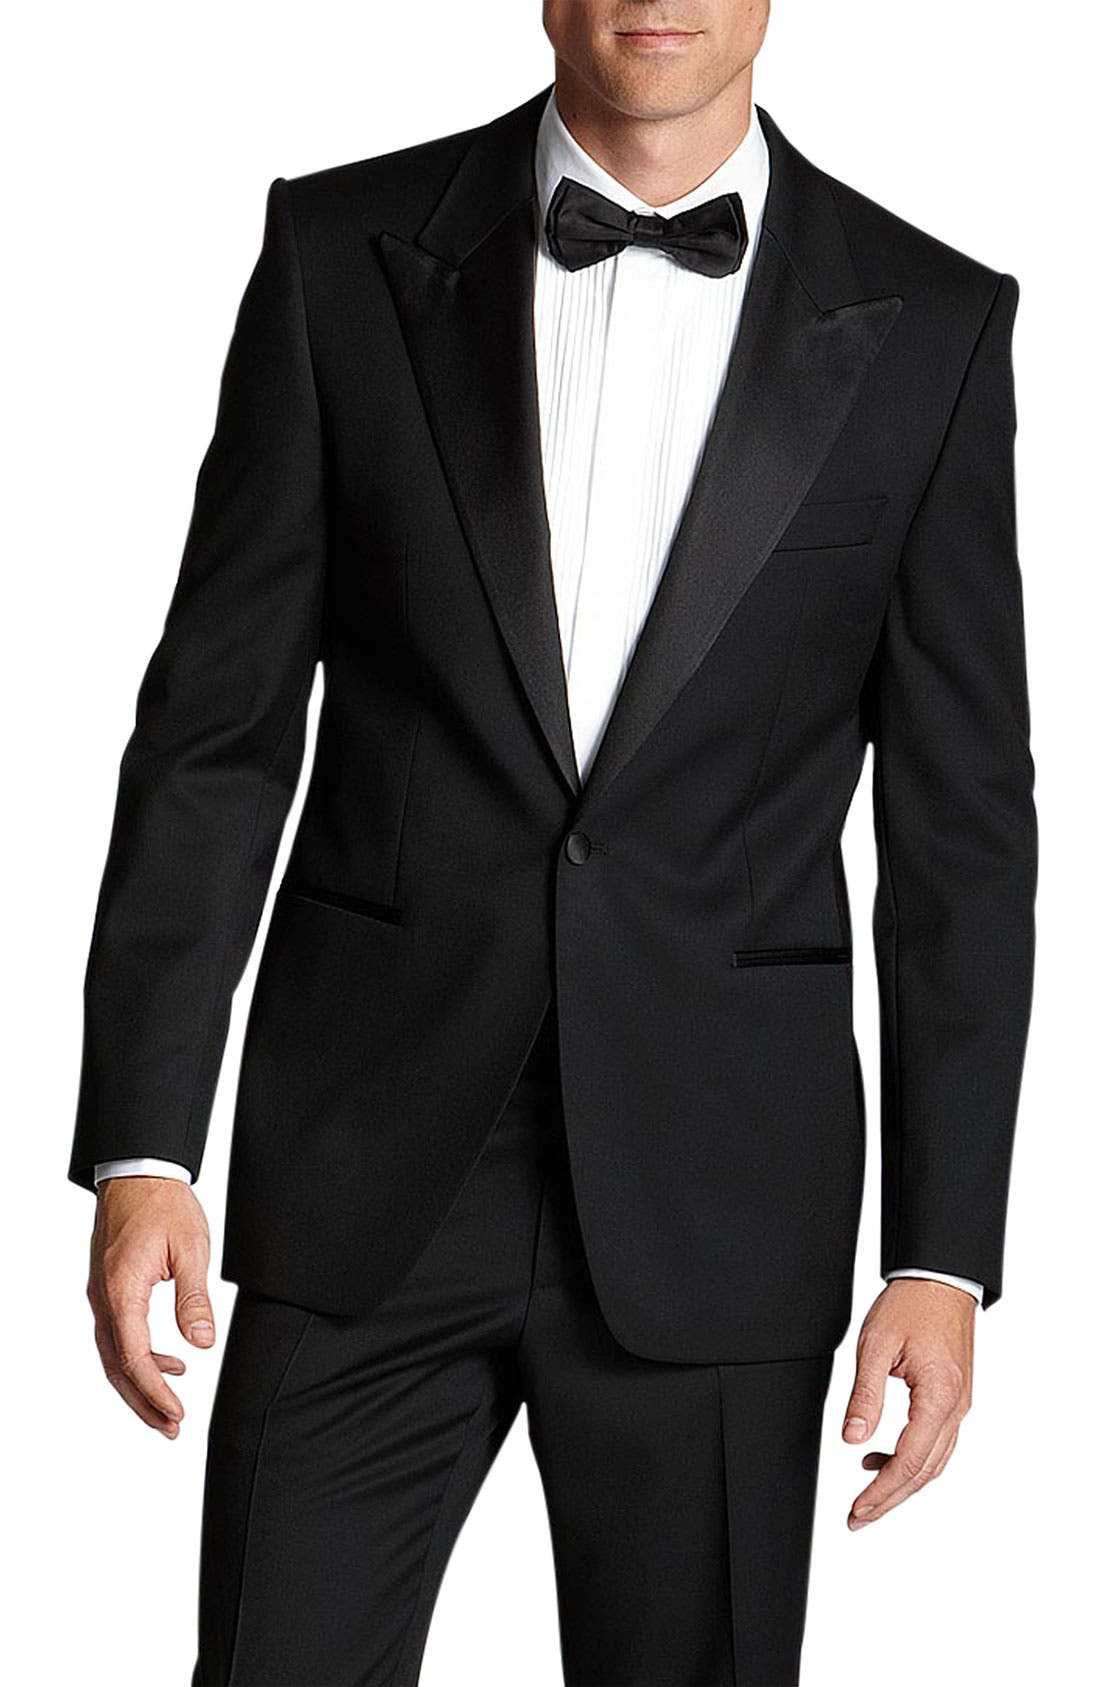 Main Image - BOSS HUGO BOSS 'Grant' Classic Fit Tuxedo (Free Next Day Shipping)